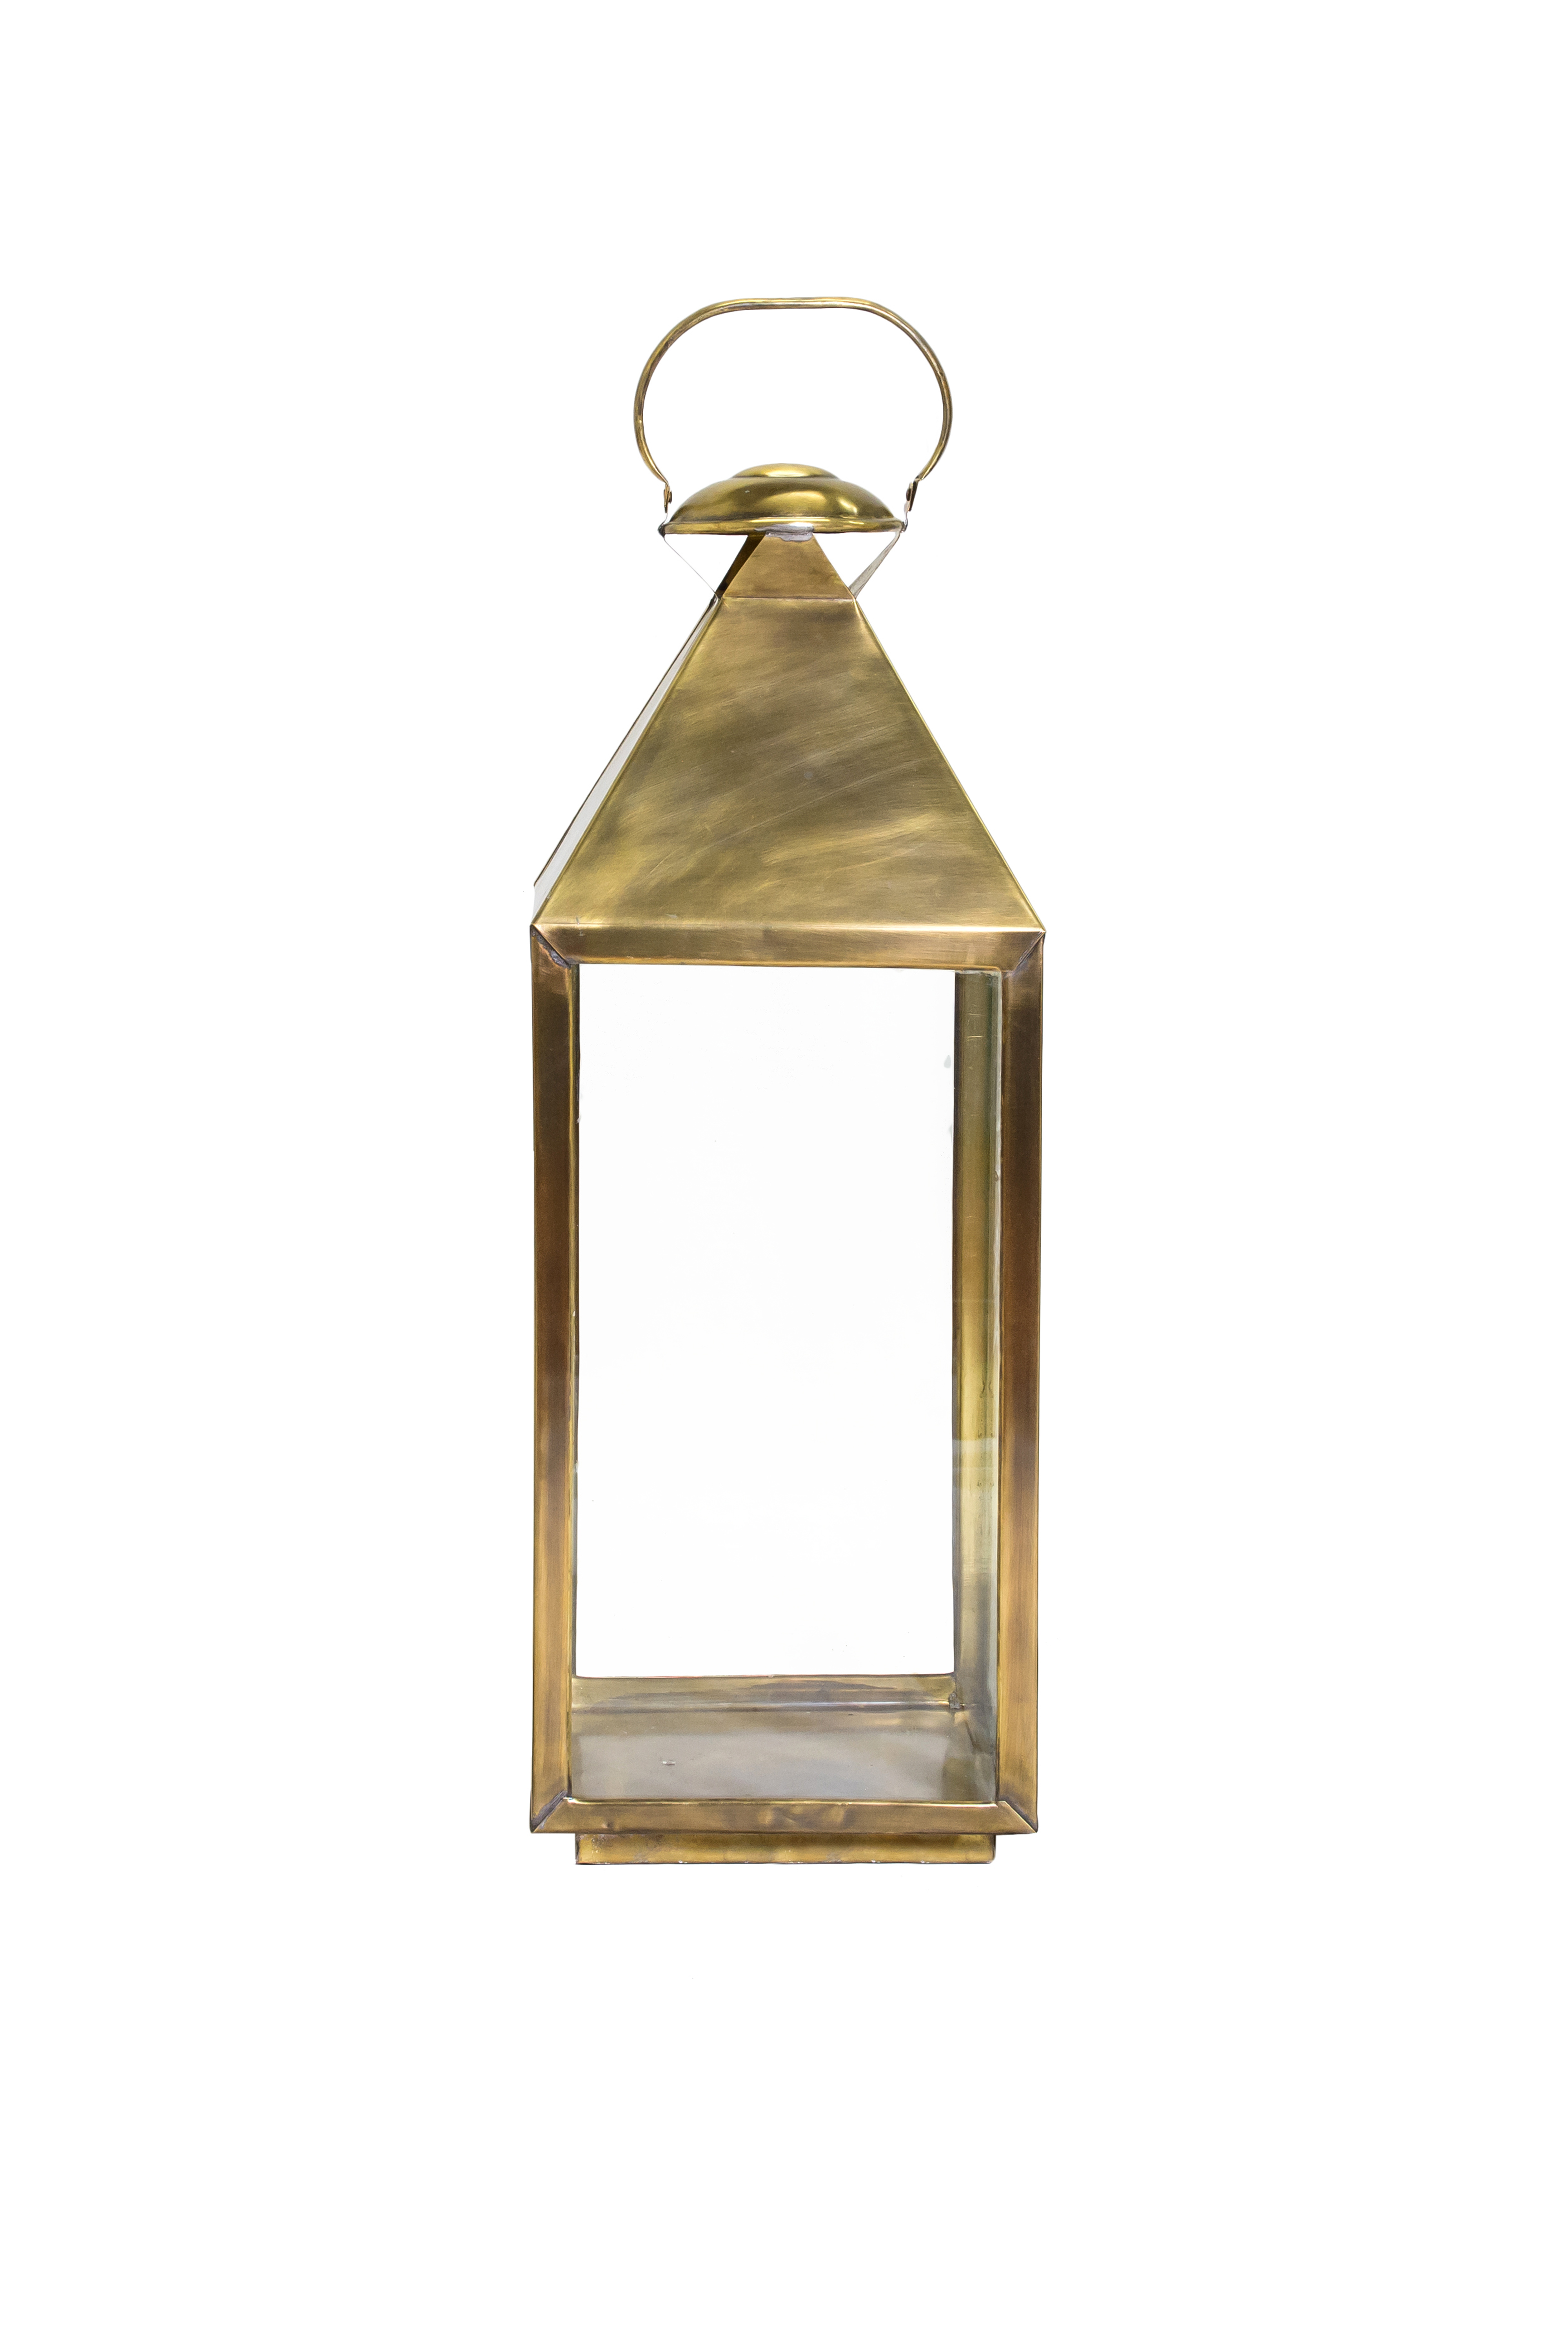 Moroccan Lantern in large bronze